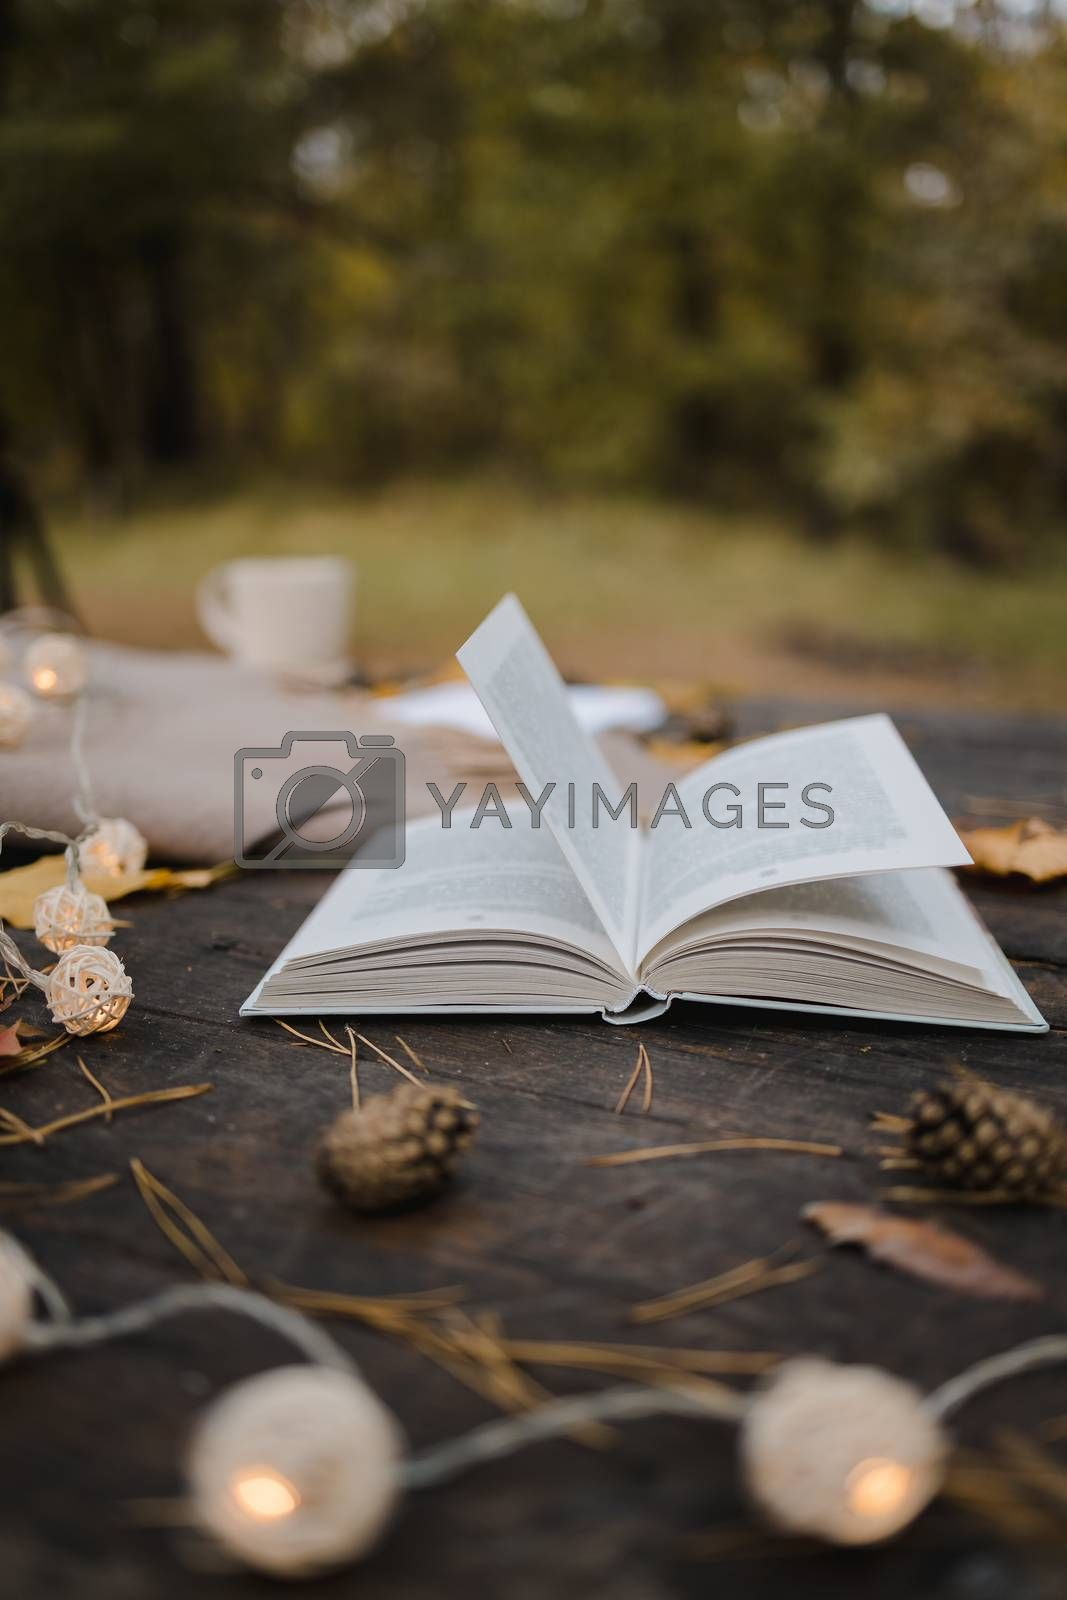 Royalty free image of On an old wooden table in an autumn park lies an open book, a plaid, a garland with lights, a cup of yellow leaves and sos cones. Top view, in blur. Autumn warm dark mood, soft focus. by Tanacha